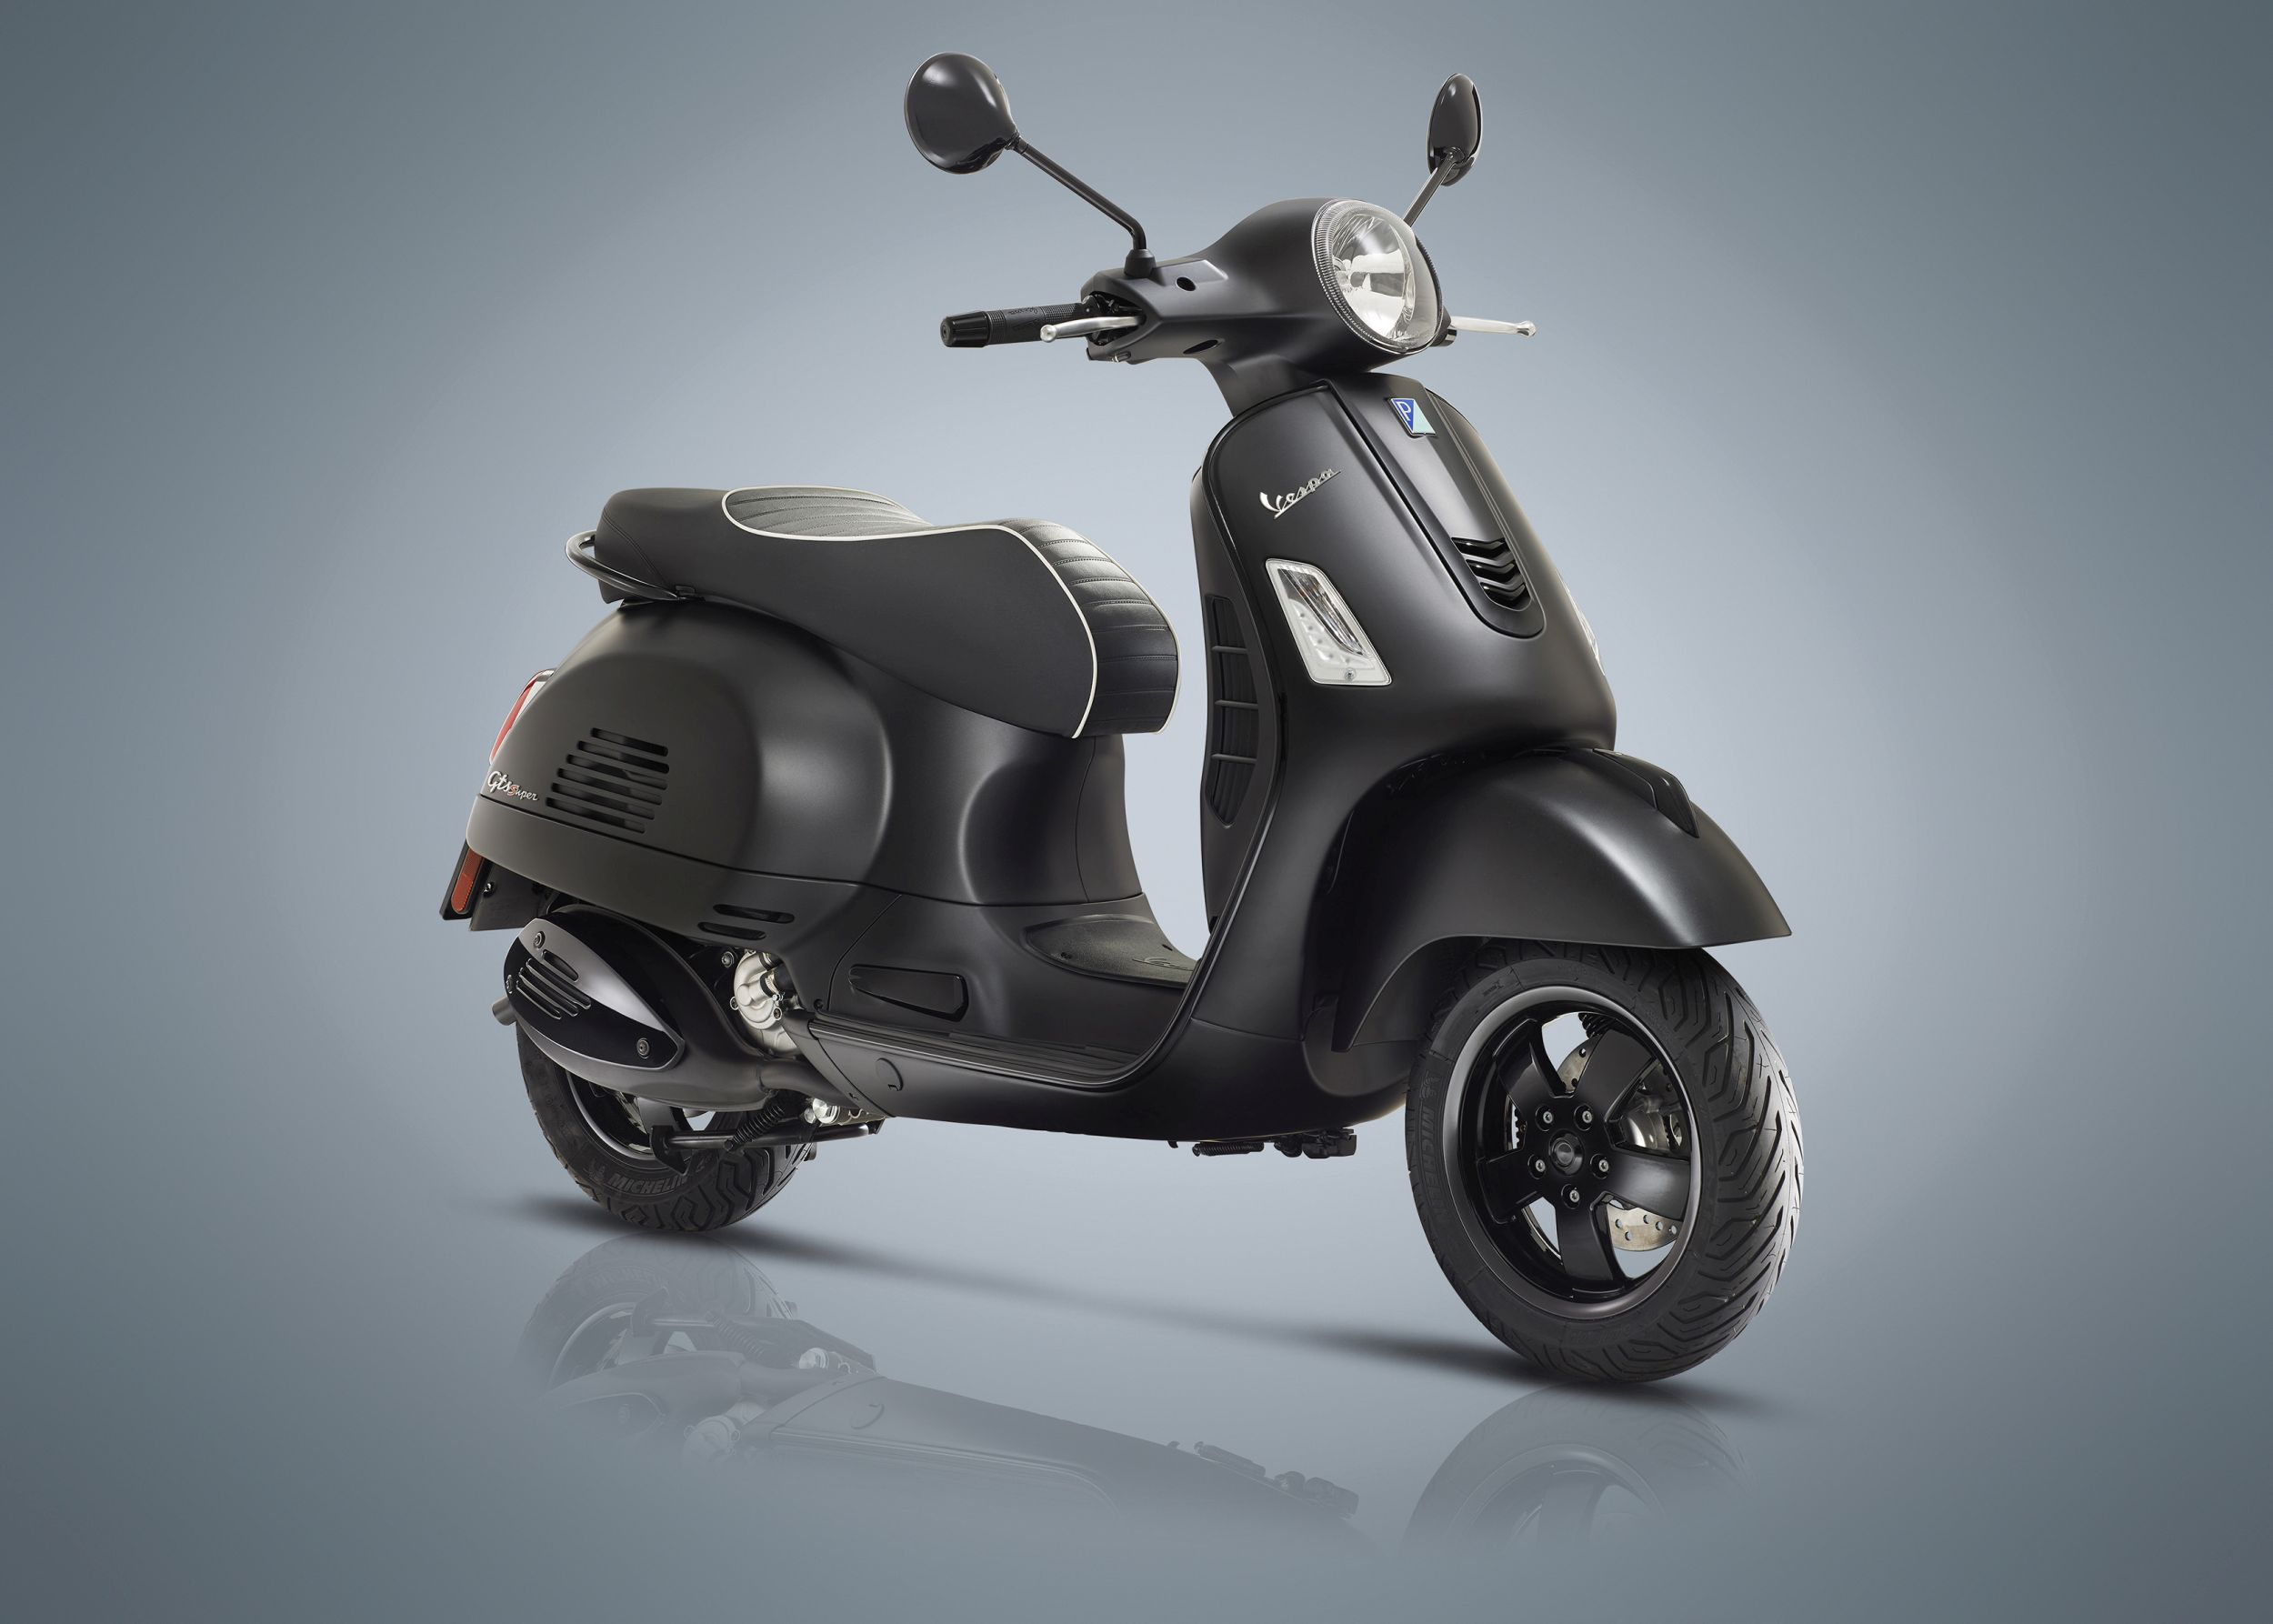 motorrad occasion vespa gts 300 i e super kaufen. Black Bedroom Furniture Sets. Home Design Ideas